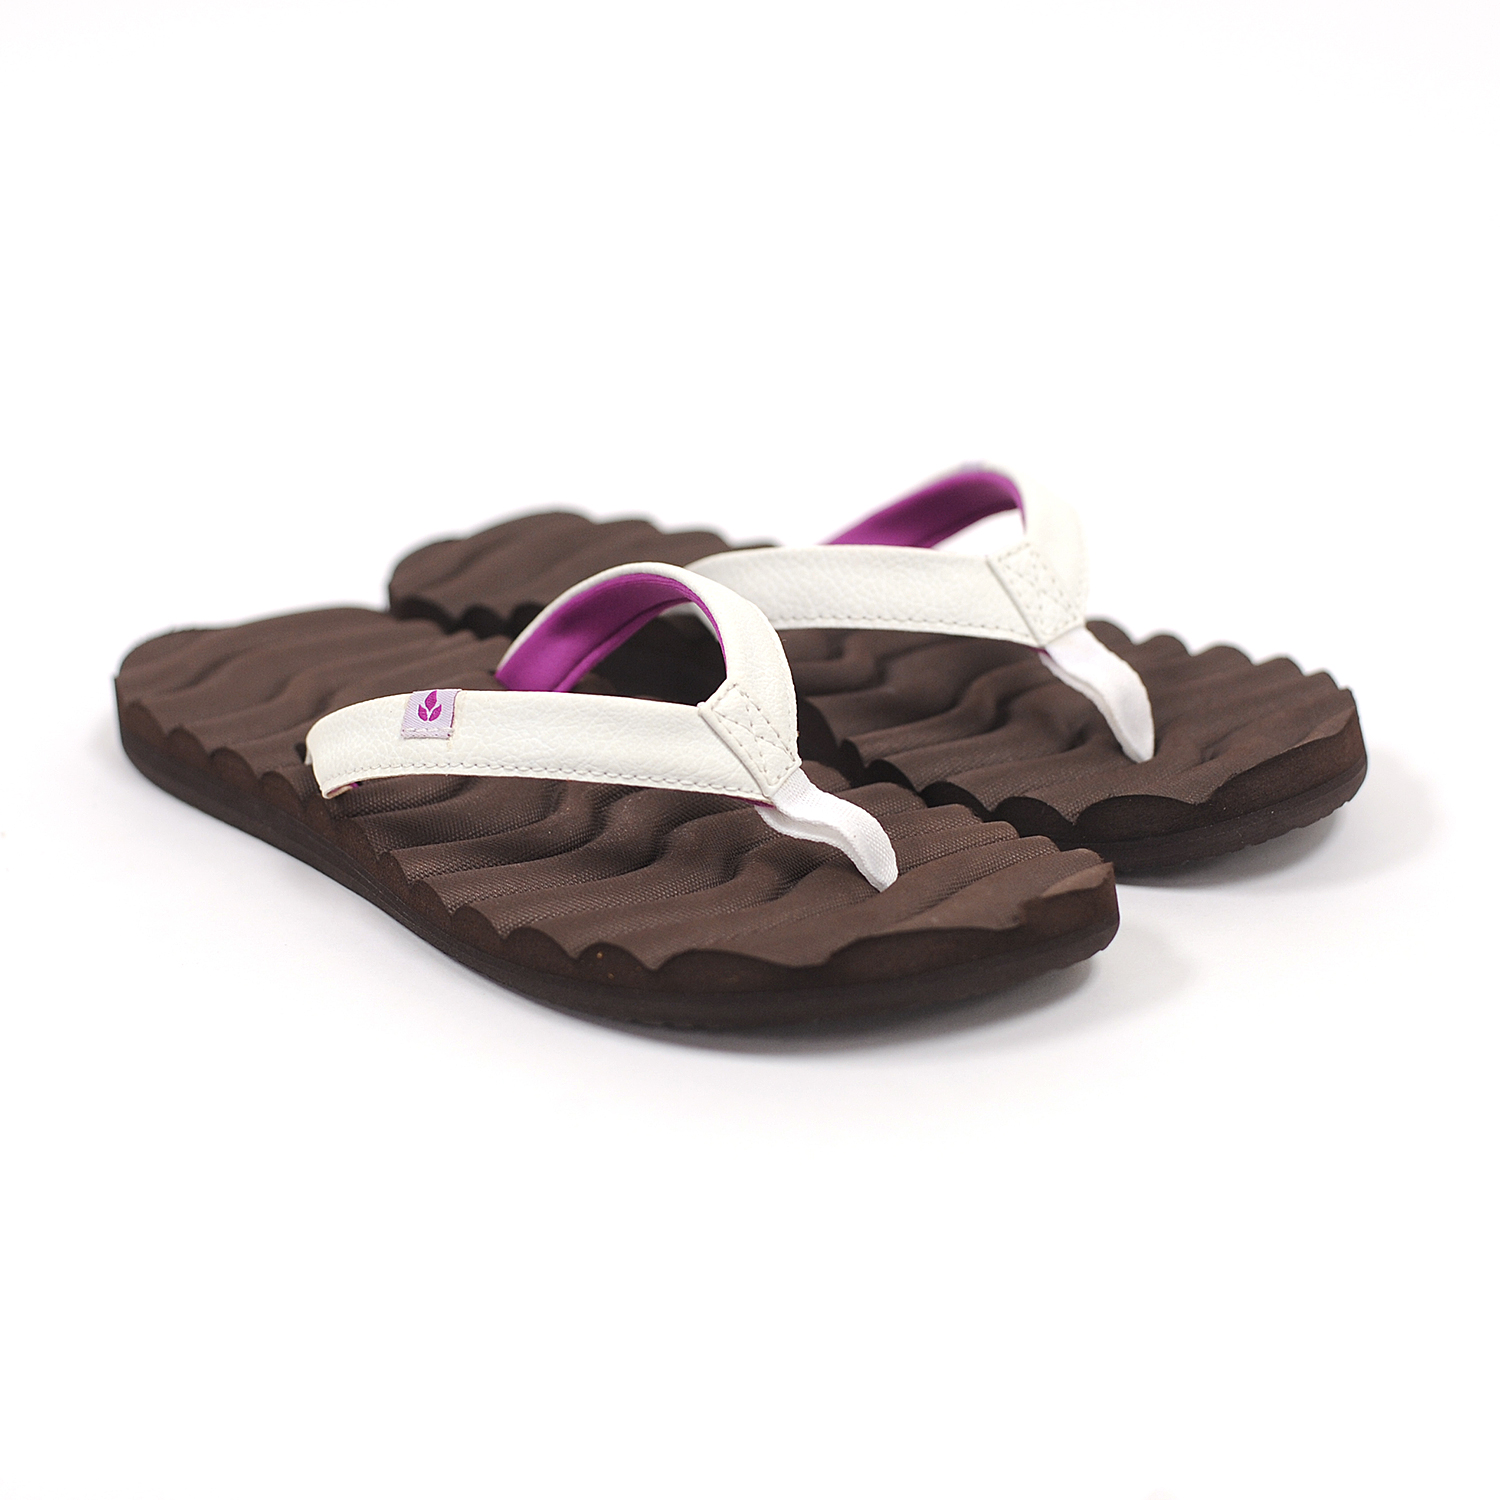 Luxury Reef Womenu0026#39;s Rover Sandal - Moosejaw